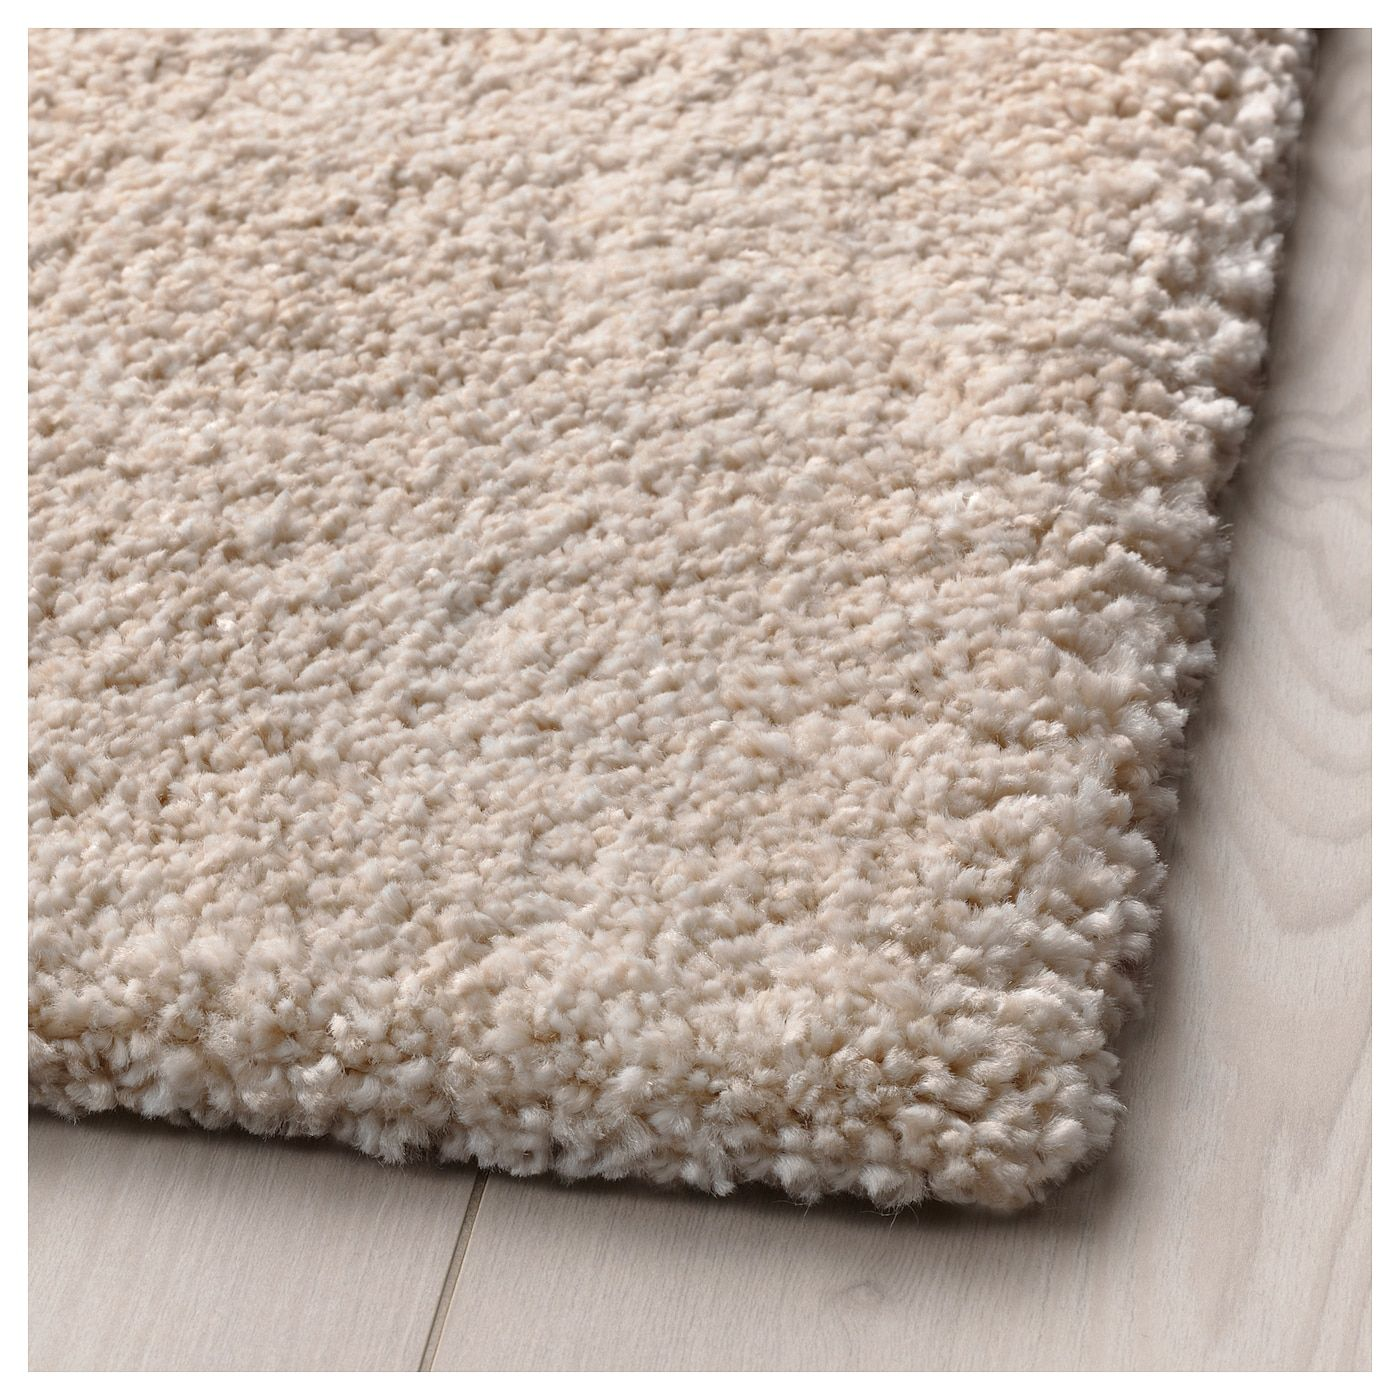 Best Stoense Rug Low Pile Off White 6 7 X9 10 Rugs 400 x 300